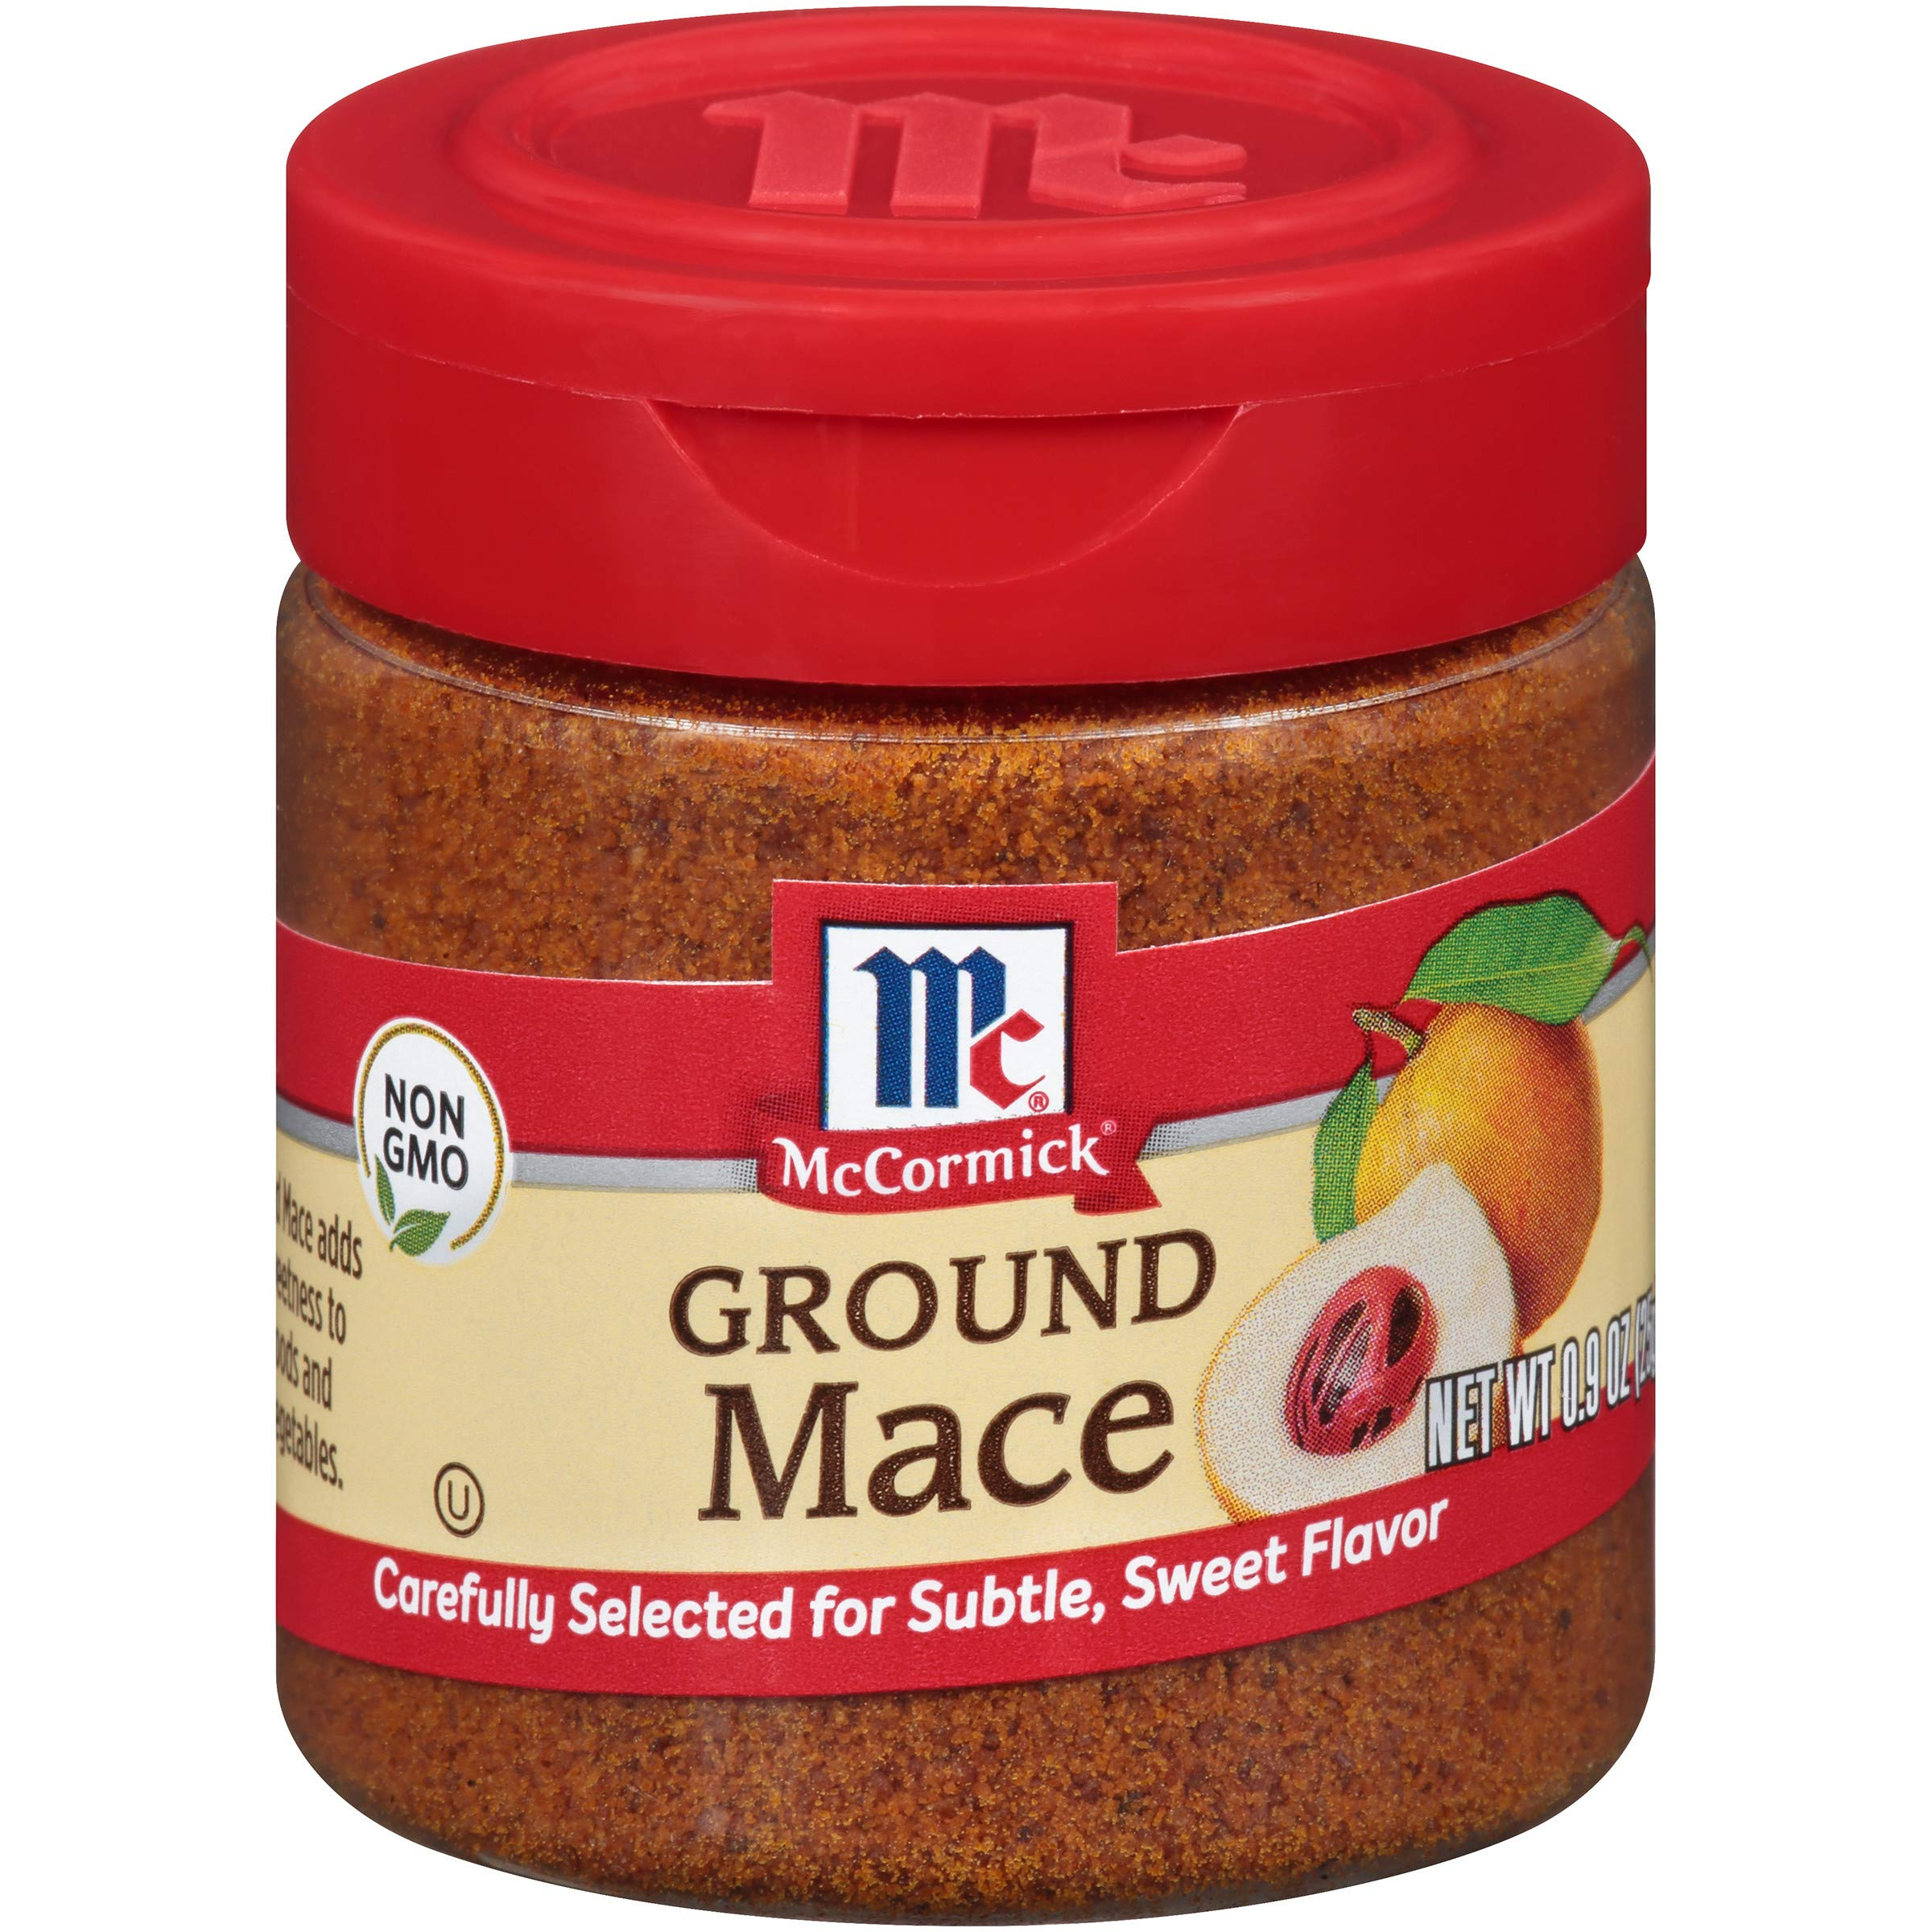 McCormick Ground Mace, 0.9 Ounce (Pack of 1)